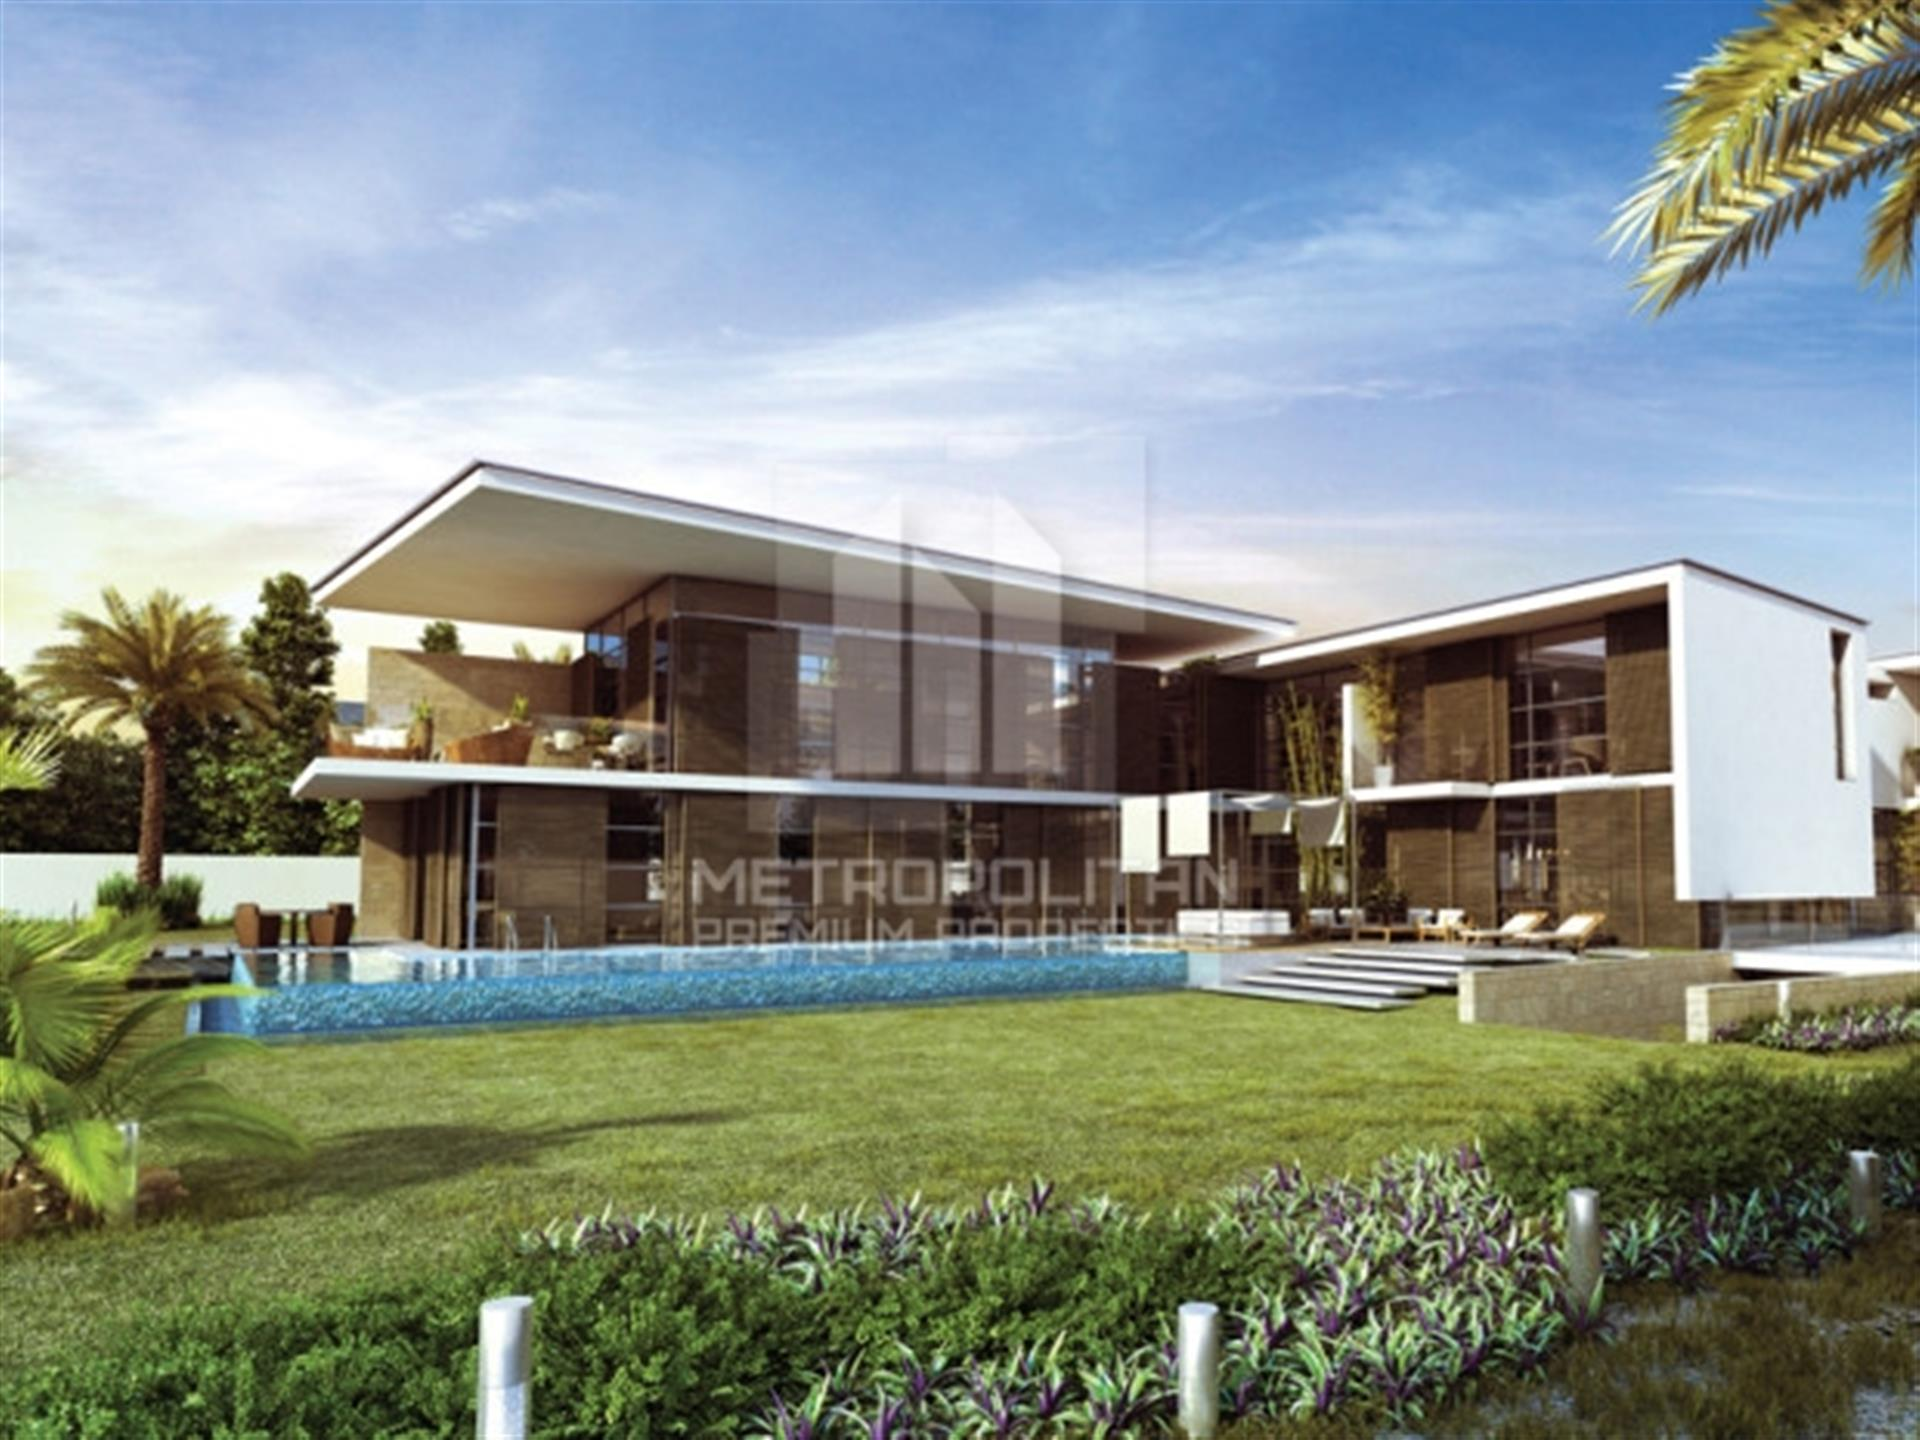 5 BR luxury villa in Brookfield 2, Akoya Drive by Damac (Availability Confirmed 10/11/2014)